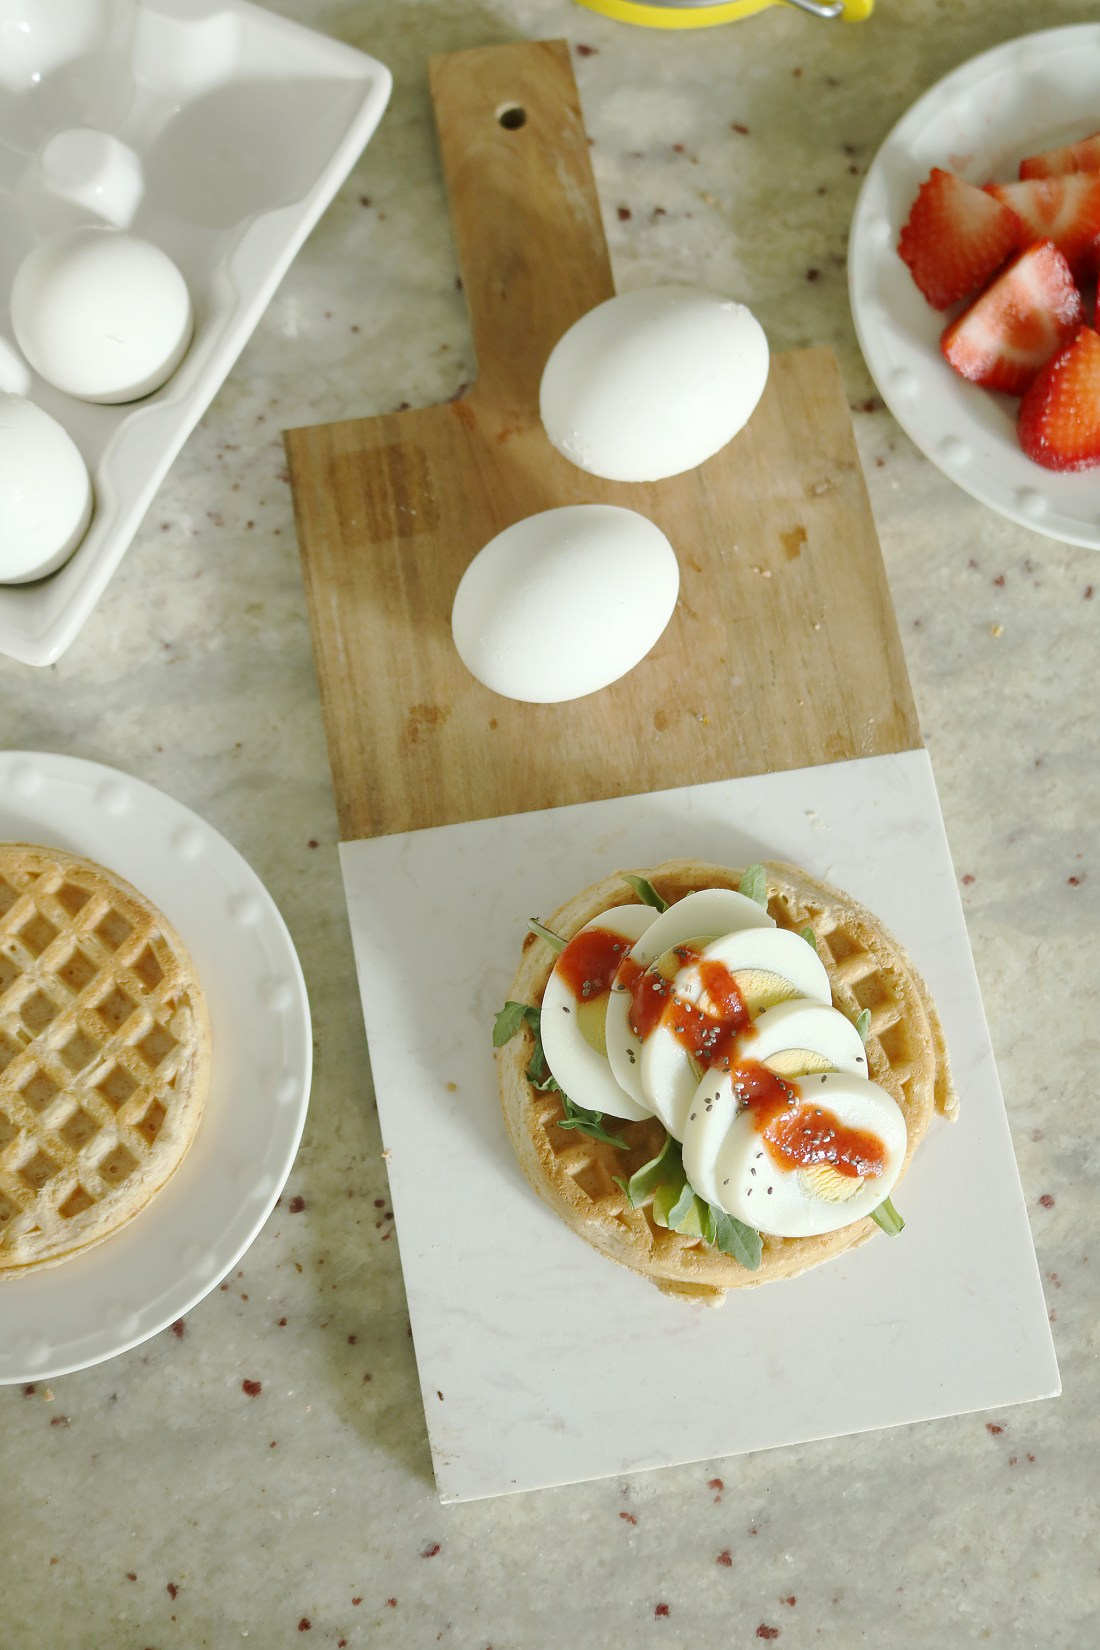 Sharing Quick Breakfast Ideas On the Go: Waffle Edition with the best kind of healthy waffle topping ideas along with TopBit protein food topping || Darling Darleen #darleenmeier #darlingdarleen #topbit